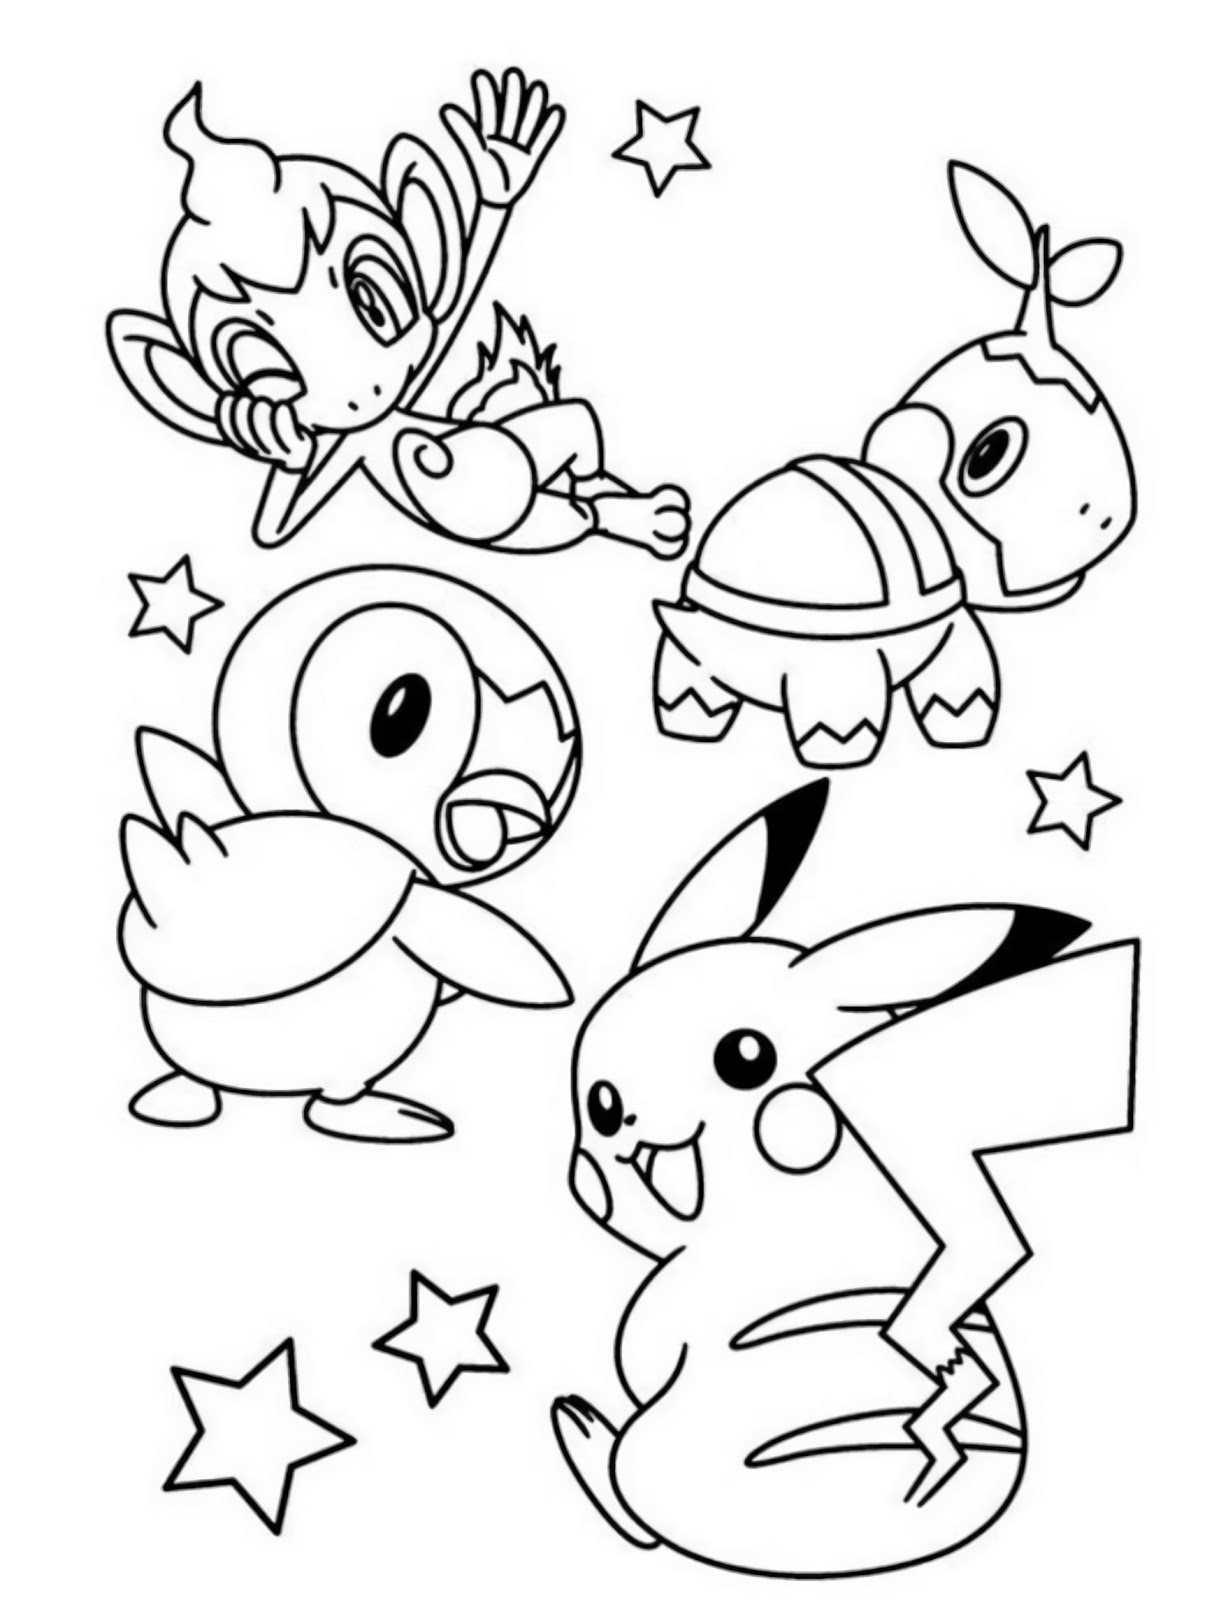 easy starter pokemon turtwig chimchar piplup and pikachu coloring pages to color - Pokémon Diamond and Pearl coloring pages